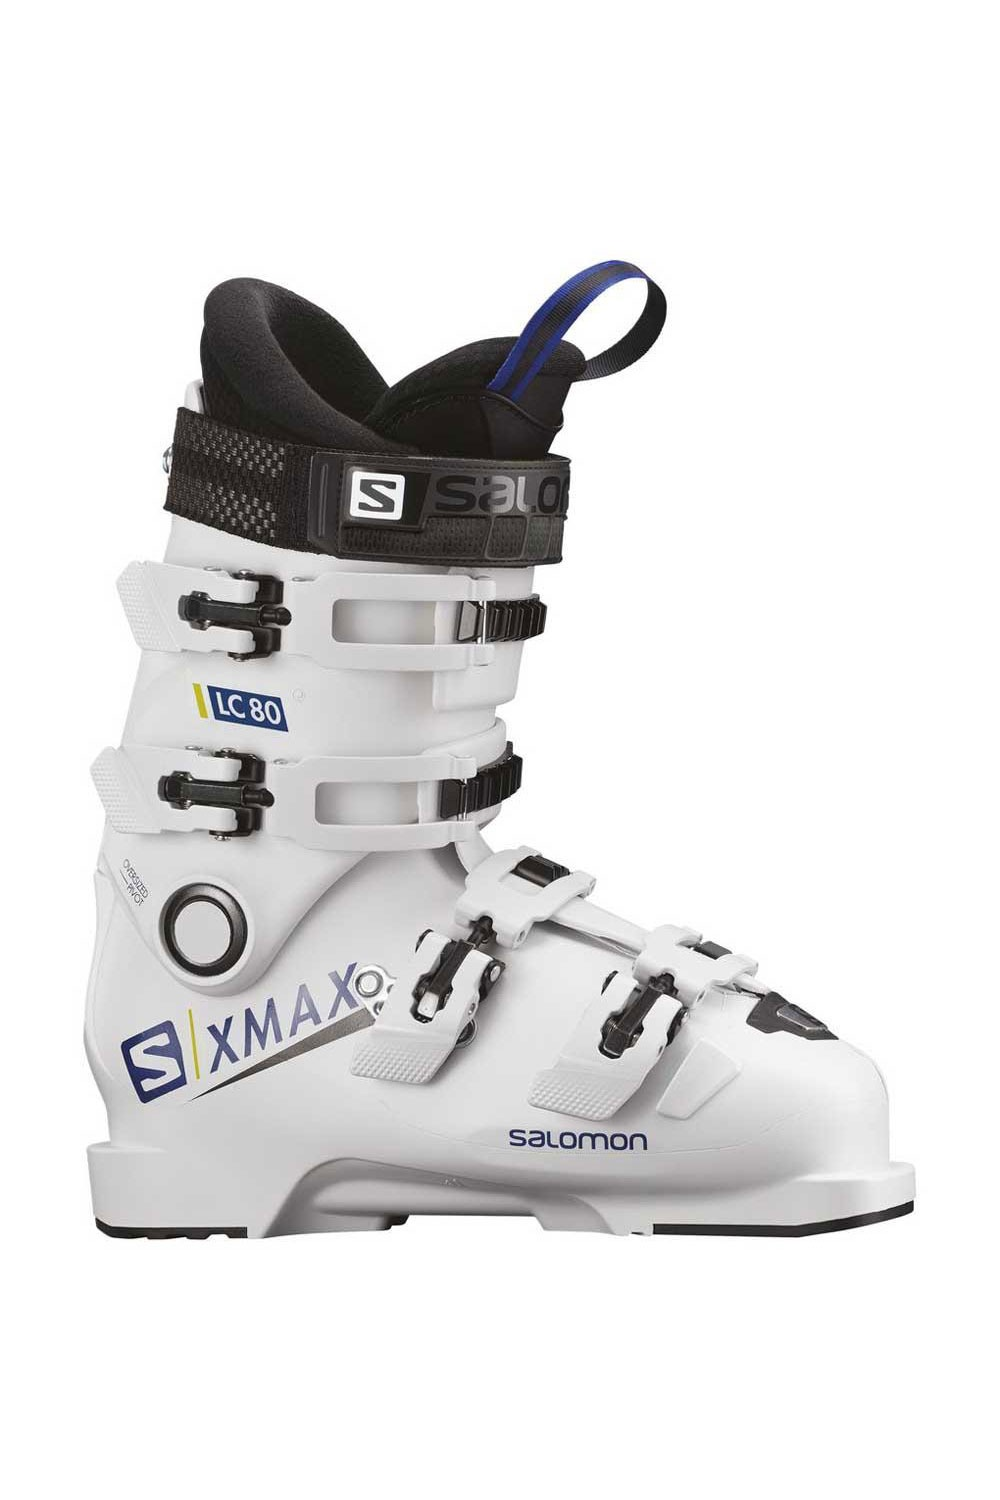 살로몬 주니어 부츠 엑스 맥스 LC 80_SALOMON X MAX LC 80(98)L40550300 WHITE/RACE BLUE_VSA81800_BVSA81800